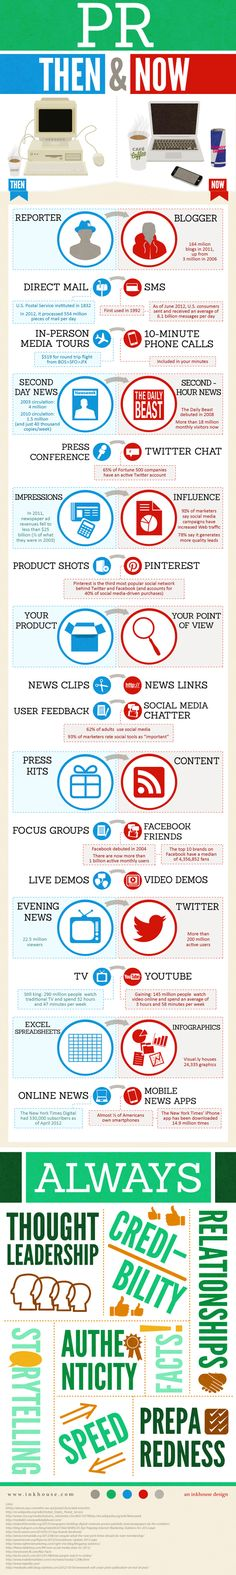 Media & PR: Then & Now. Great infographic detailing how digital media has shaped the public relations field.Social Media & PR: Then & Now. Great infographic detailing how digital media has shaped the public relations field. Guerilla Marketing, Social Marketing, Inbound Marketing, Marketing Digital, Marketing Trends, Marketing Online, Business Marketing, Content Marketing, Marketing And Advertising